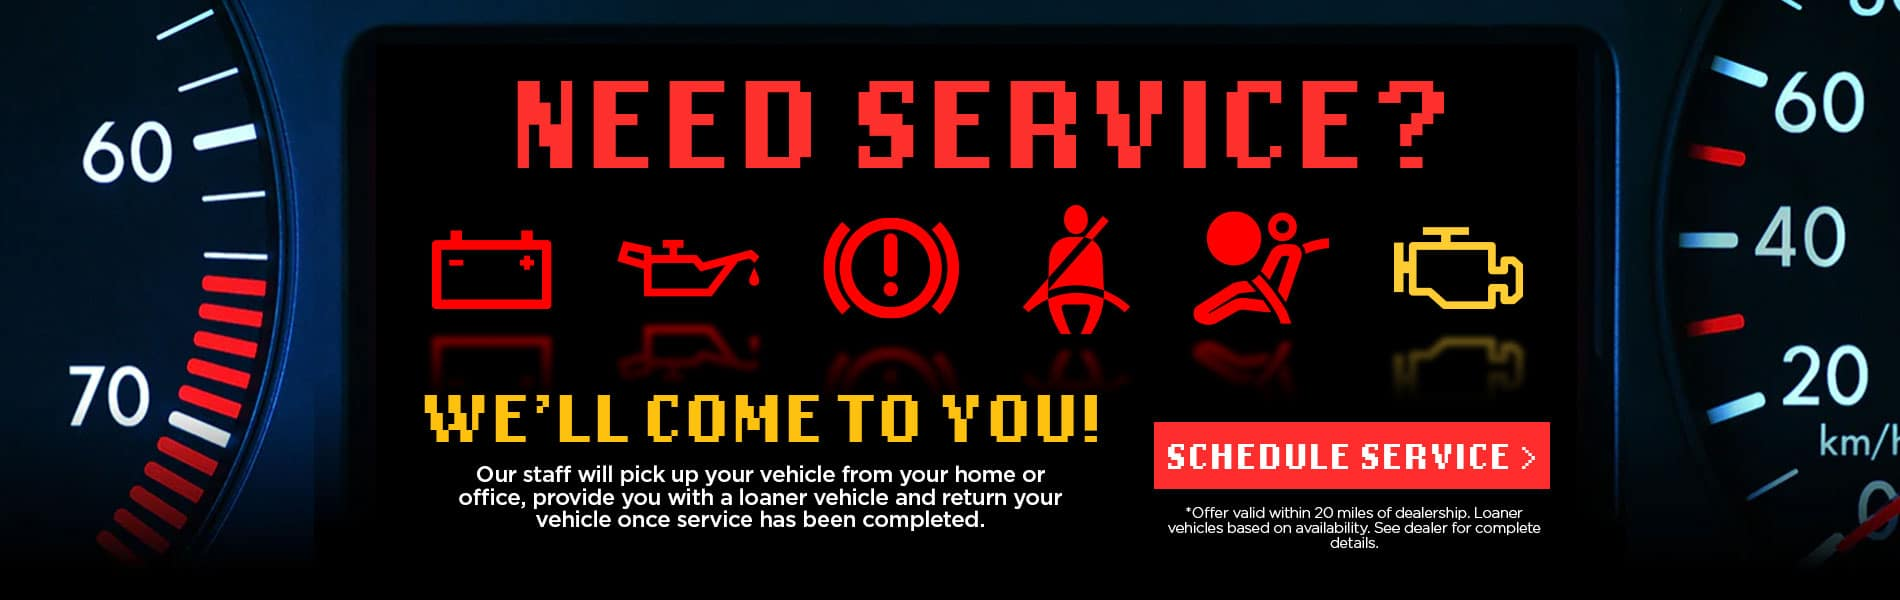 Need Service? We'll Come to You